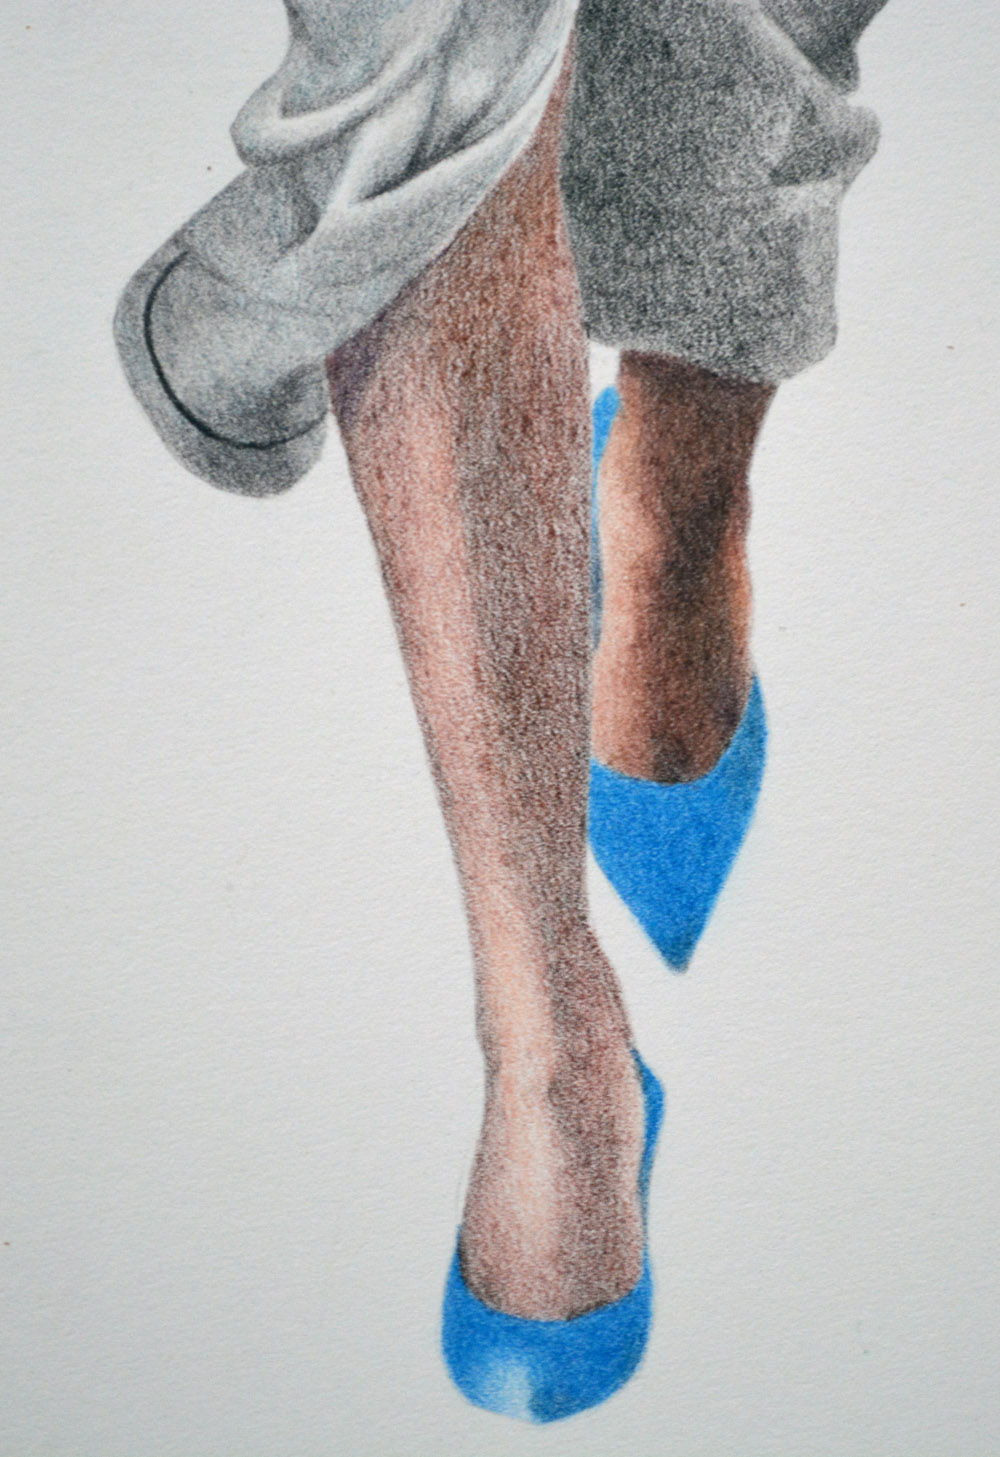 work in progress one leg blended